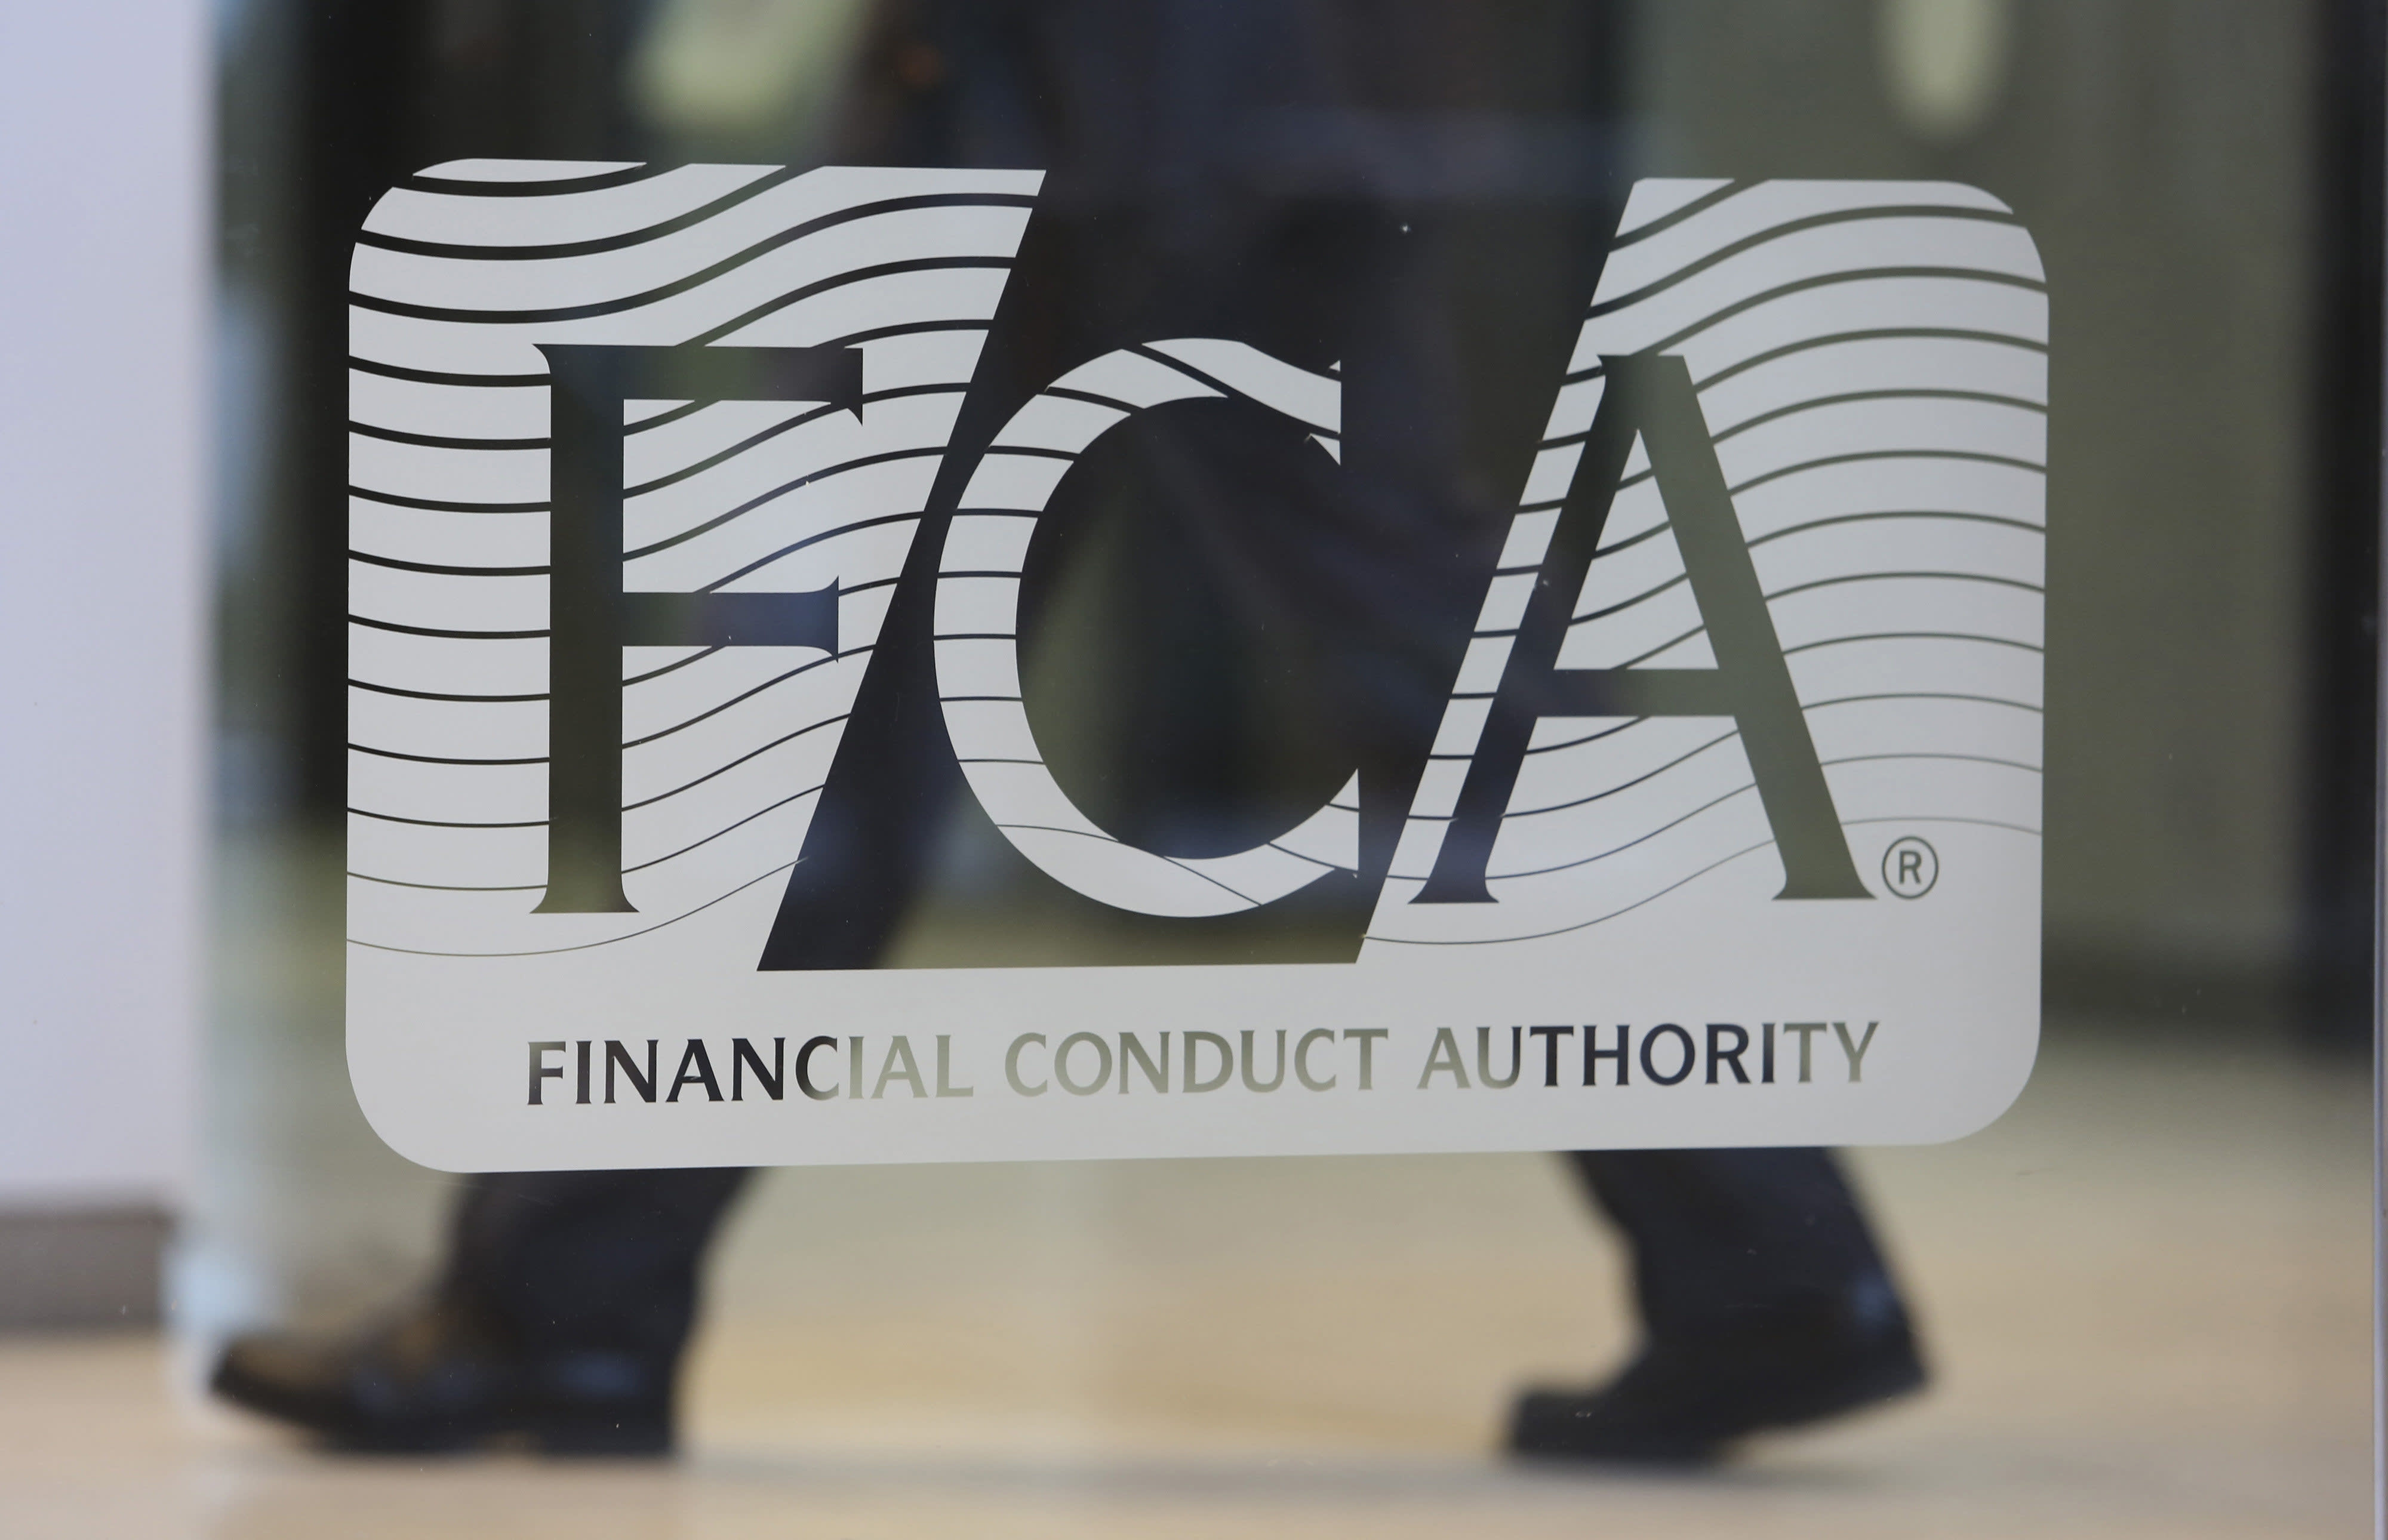 Regulator wants firms that 'harm' to pay more towards FSCS